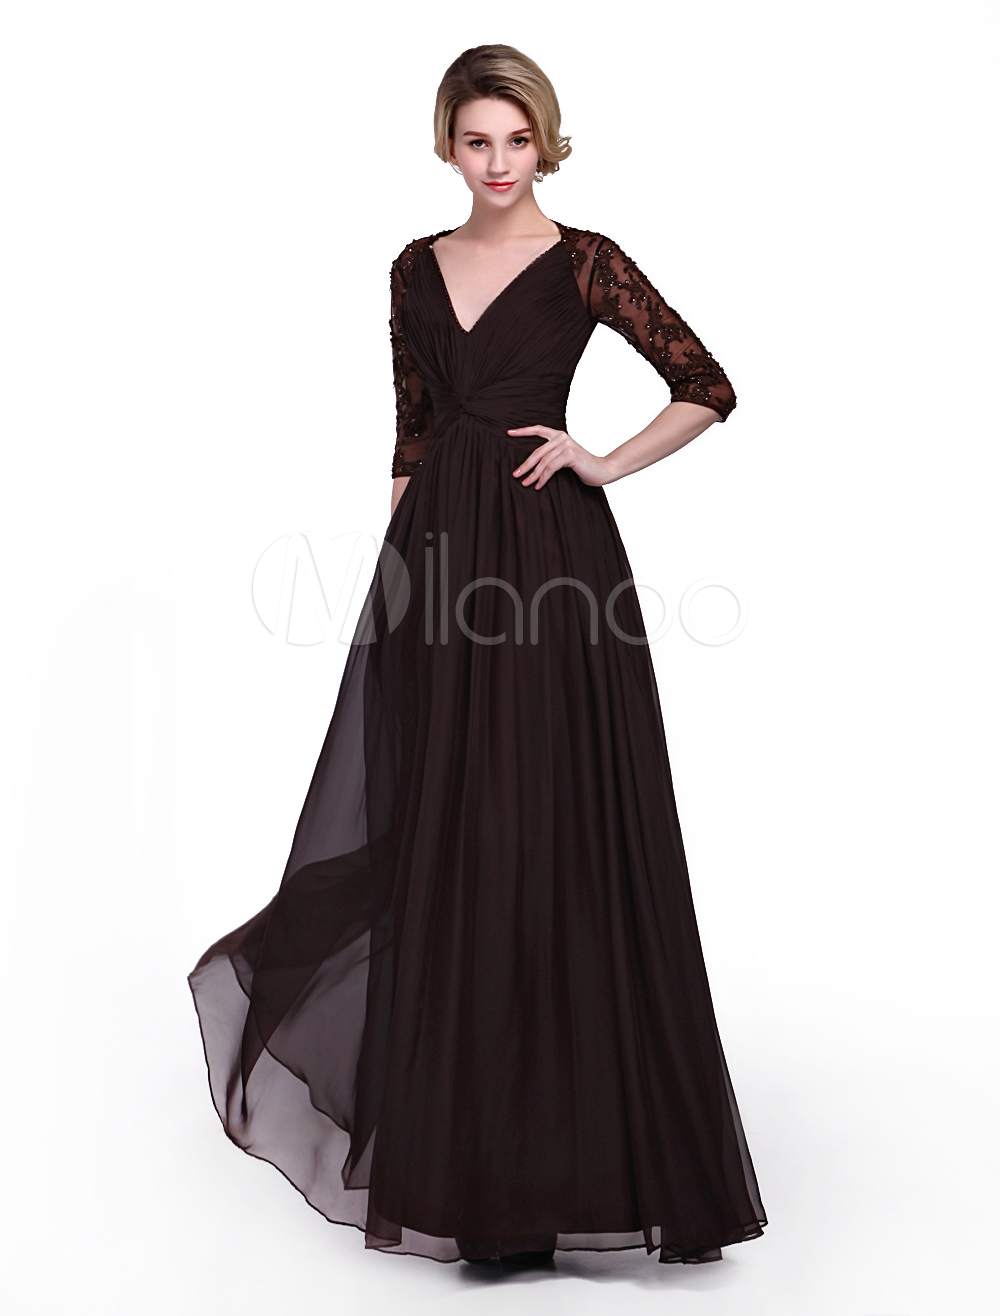 Chocolate Dress For Mother of the Bride with A-line Skirt V-Neck Applique 3/4 Length Sleeves  Milanoo